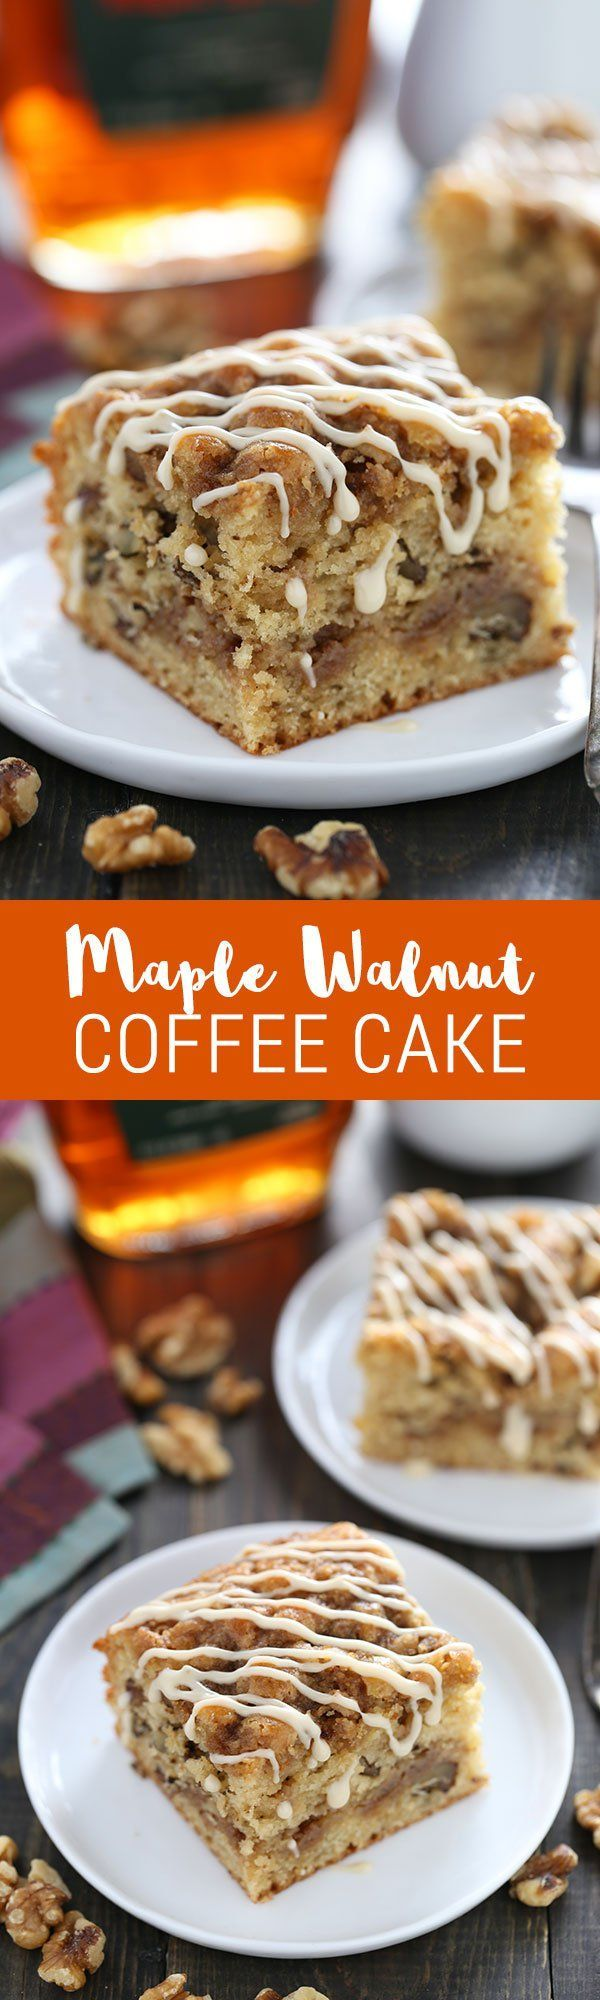 We LOVED this coffee cake! Super quick & easy, perfect recipe for fall entertaining! Made with @CAWalnuts!